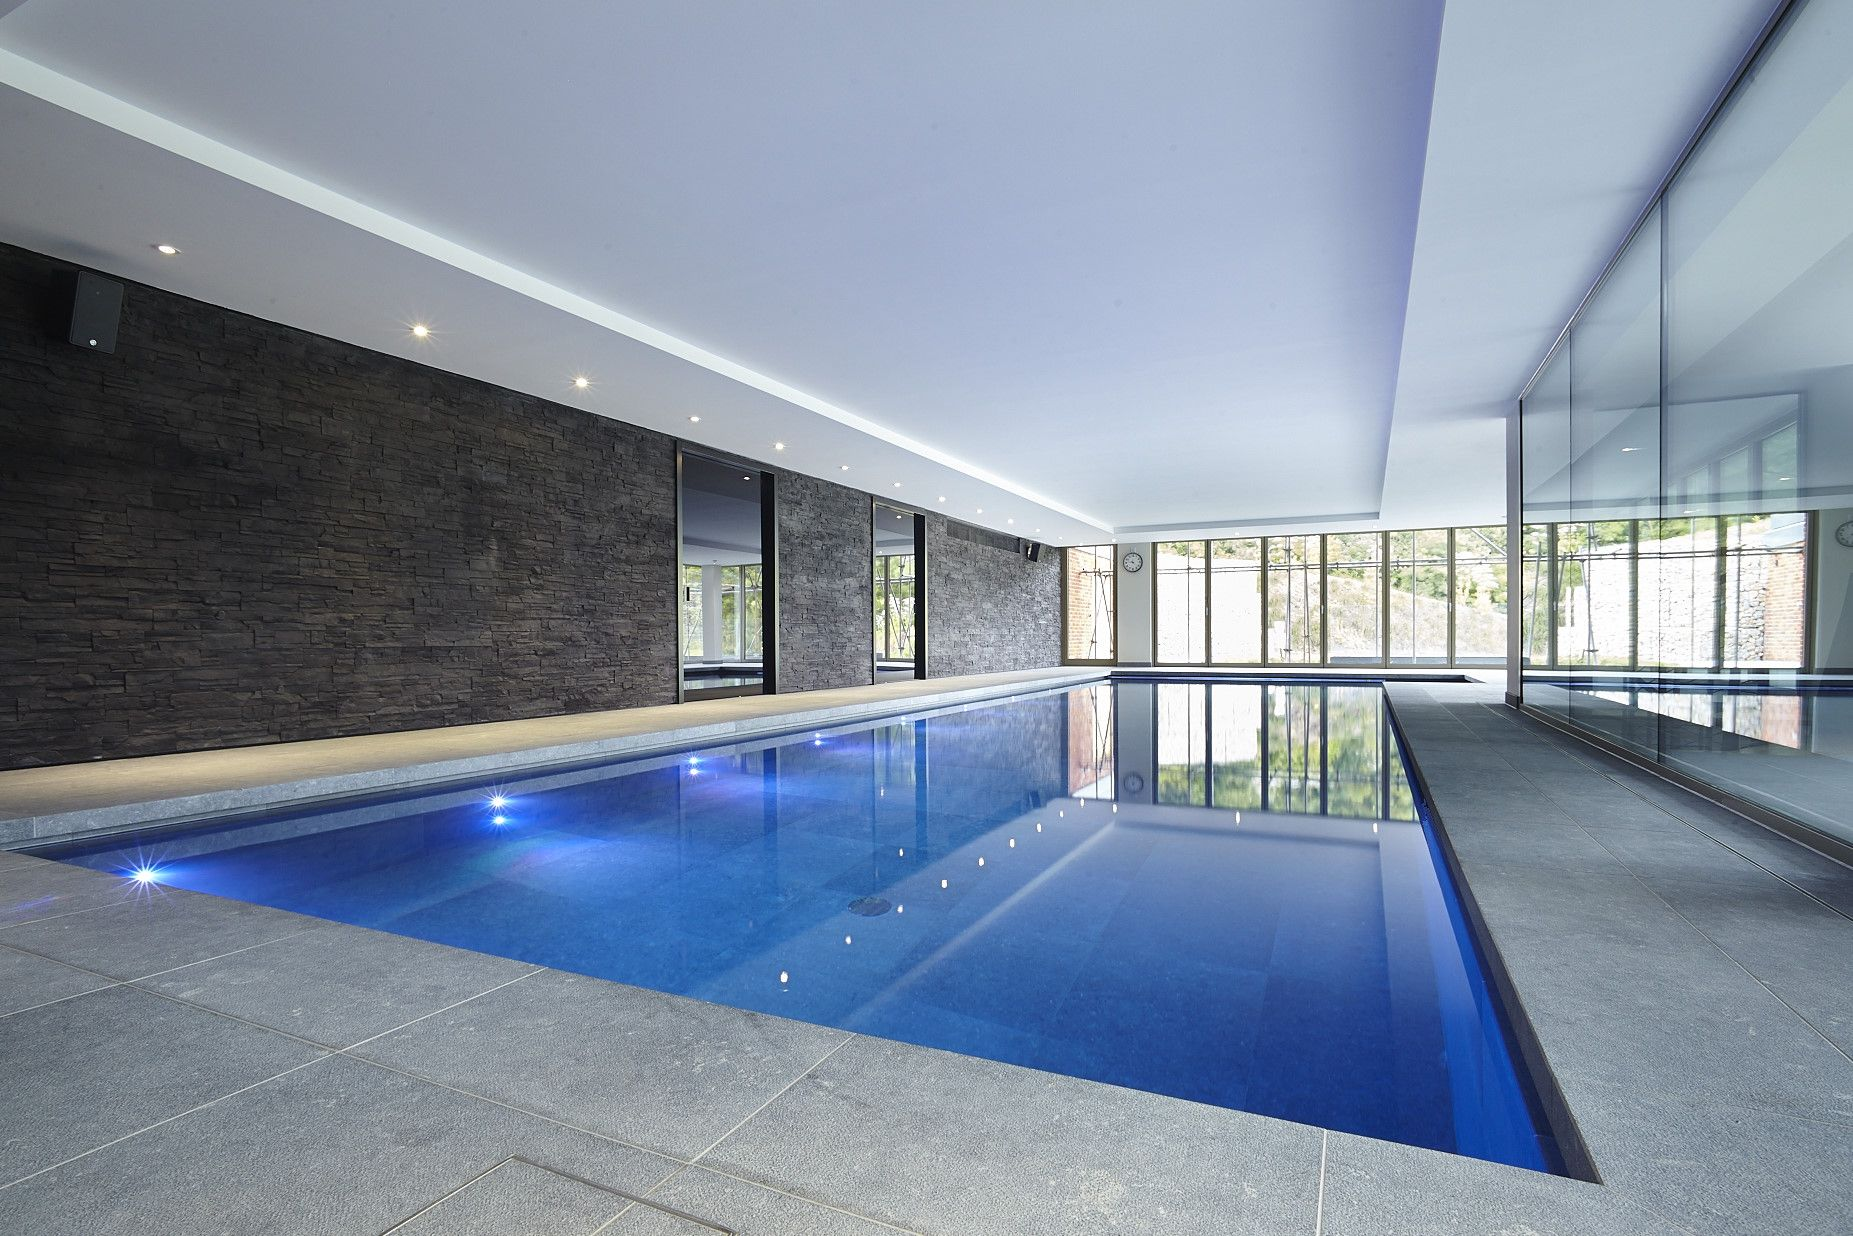 Luxury Indoor Swimming Pool With Bespoke Lighting